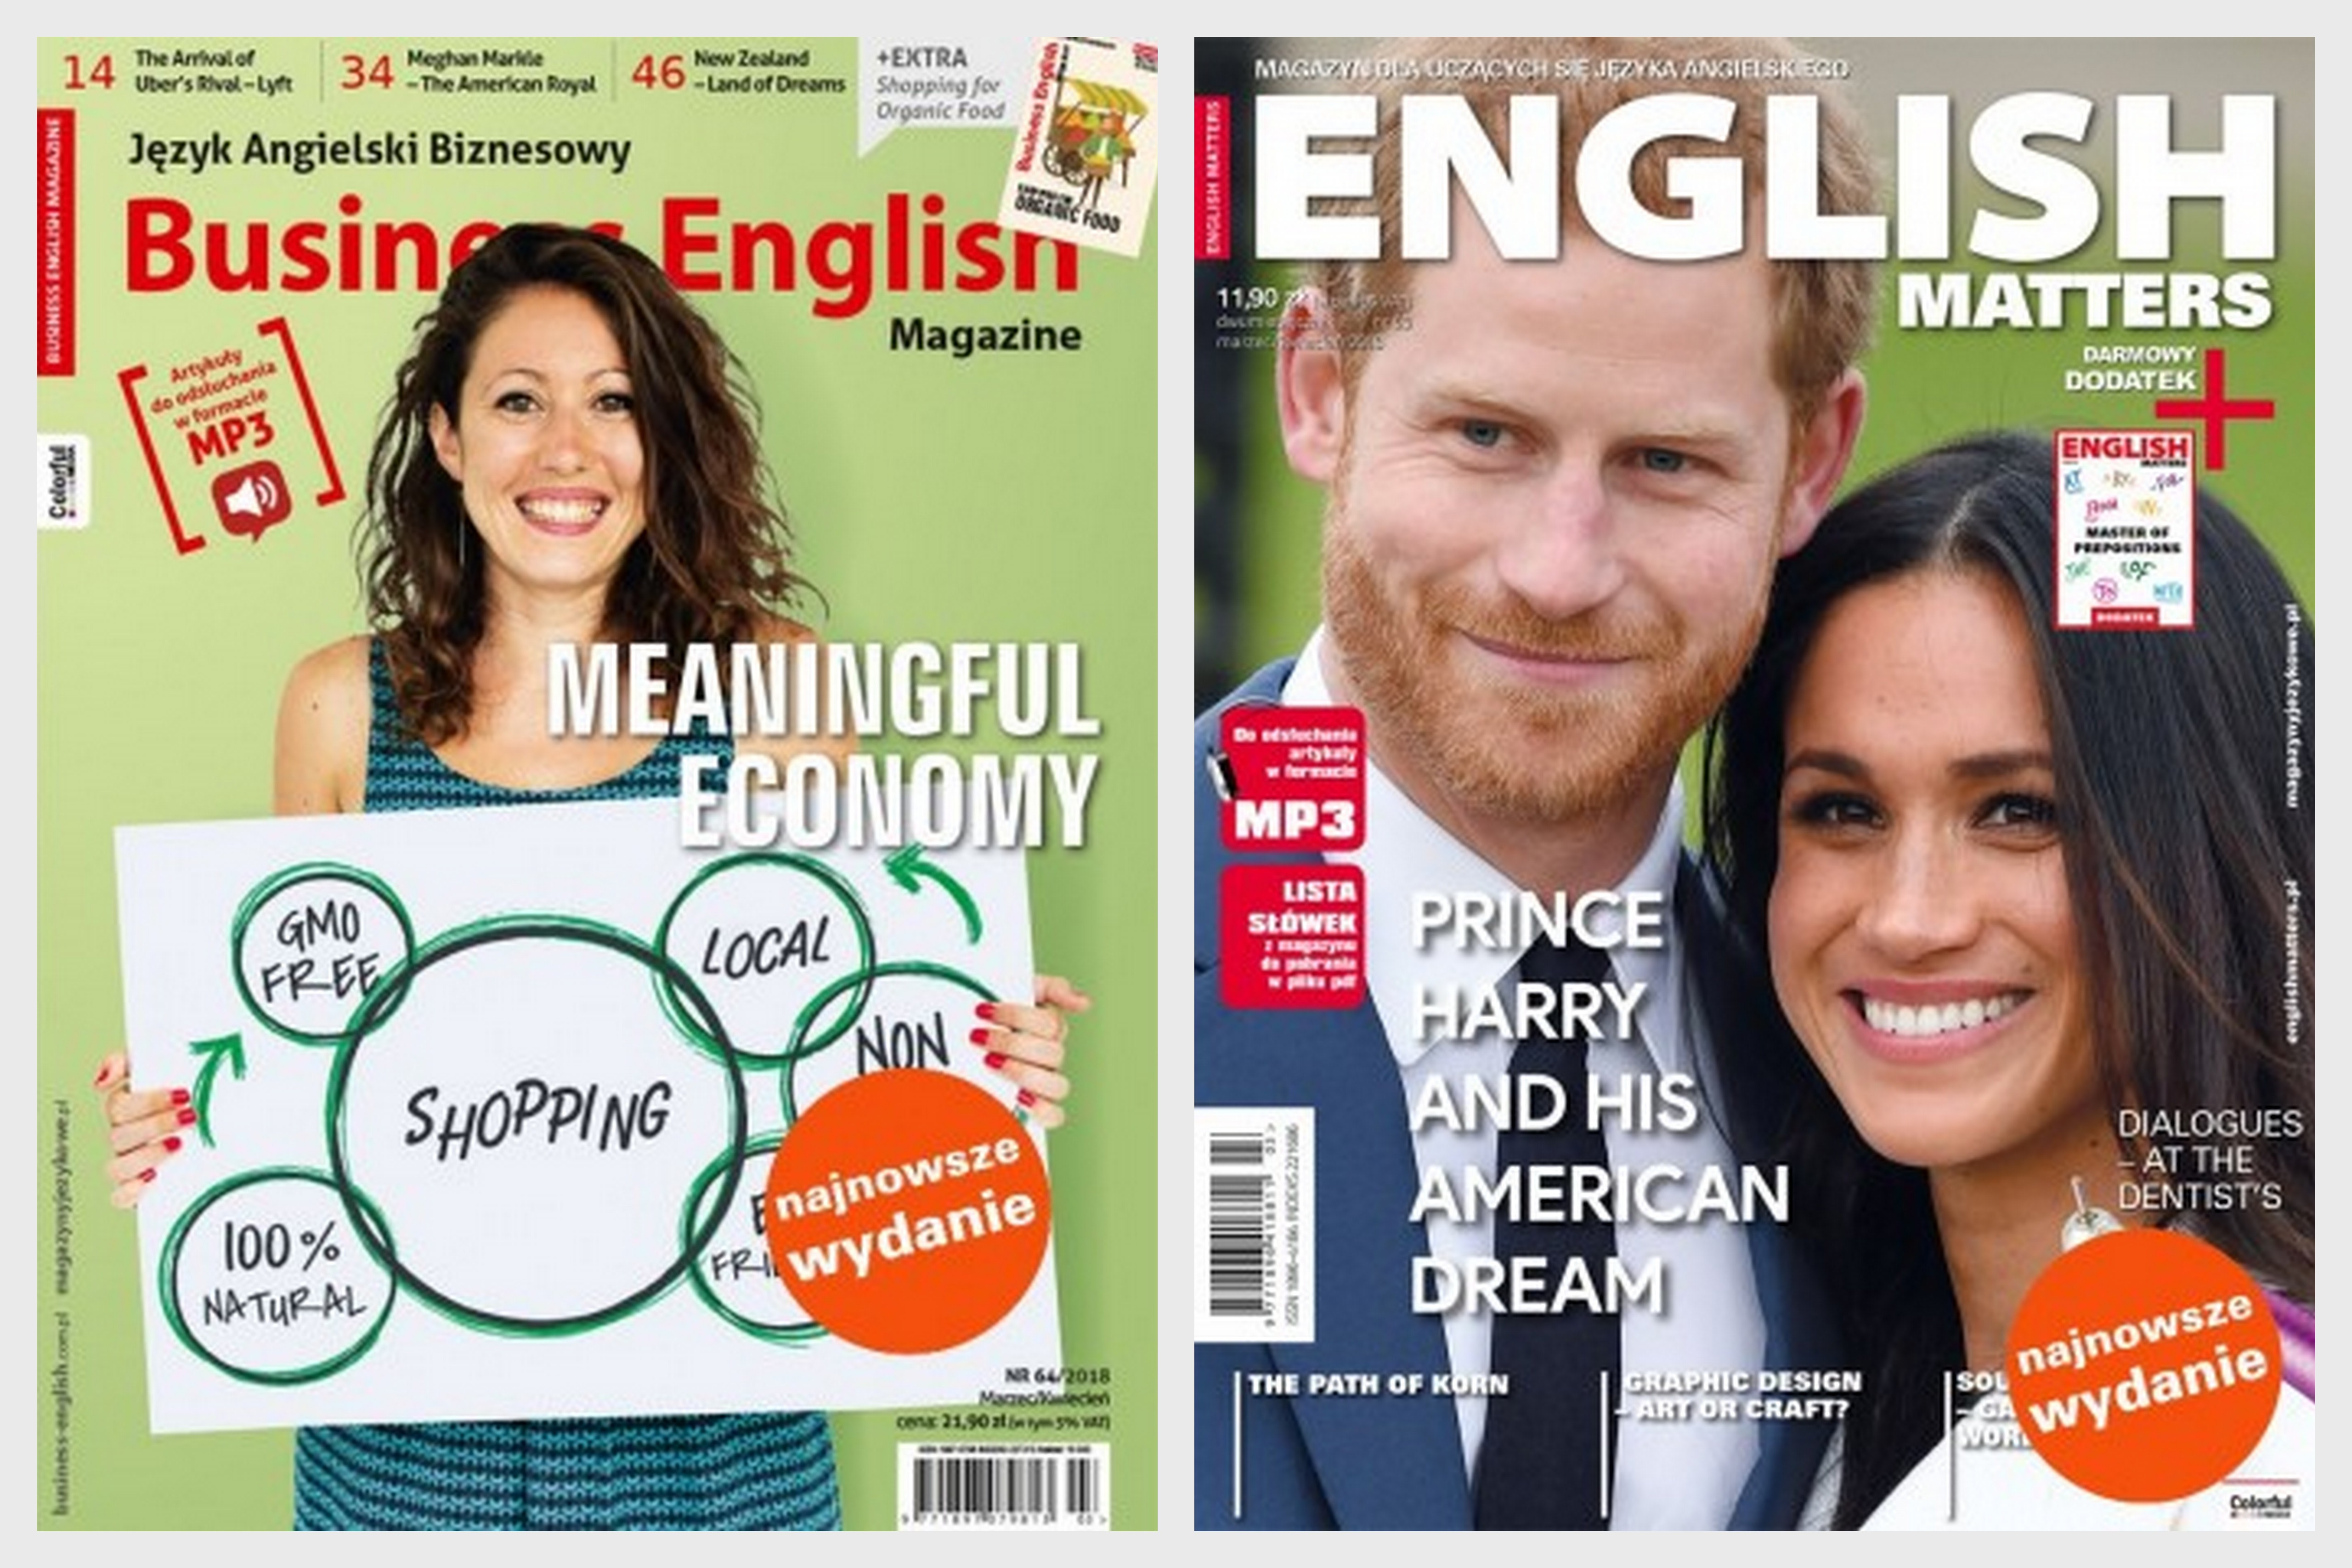 English Matters 69 i Business English 64/2018